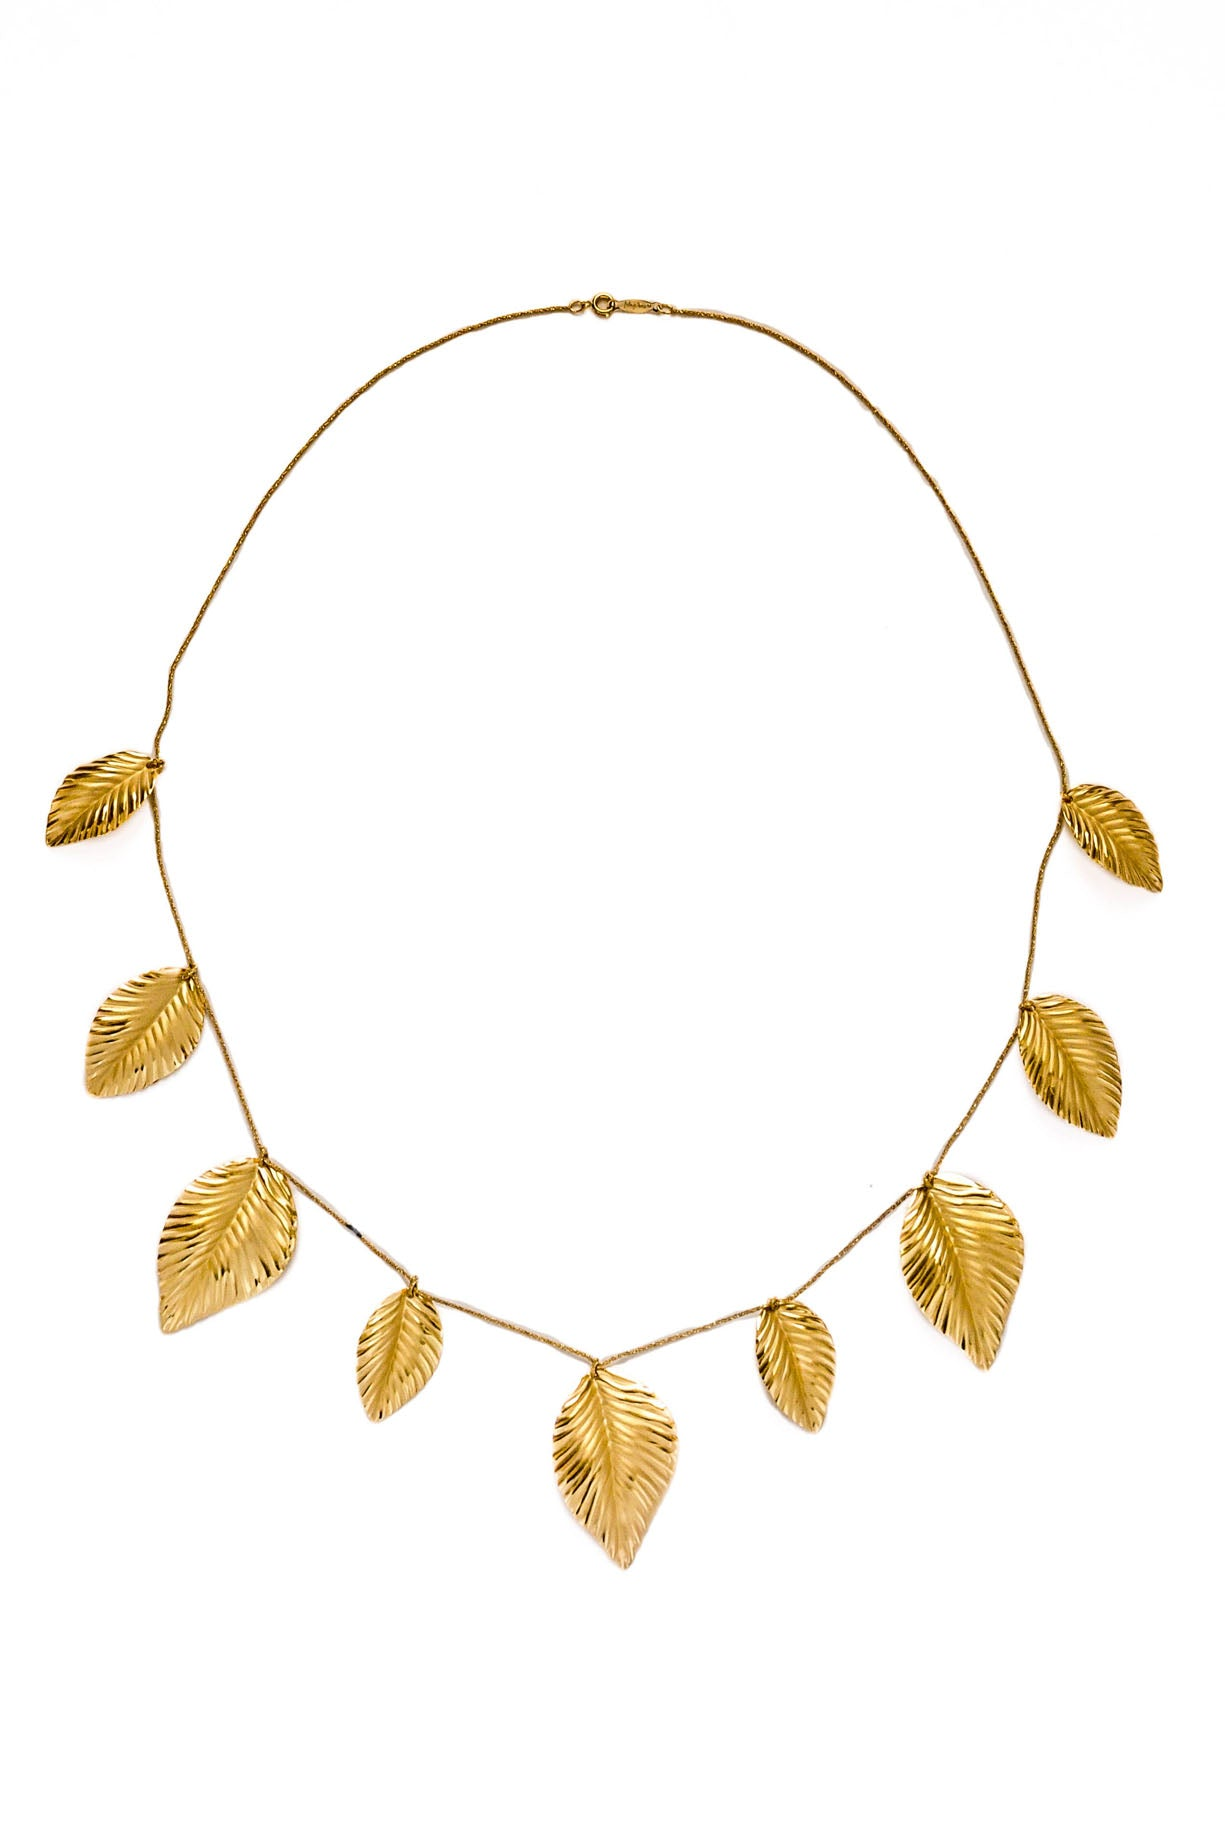 Vintage Statement Leaves Necklace from Sweet and Spark